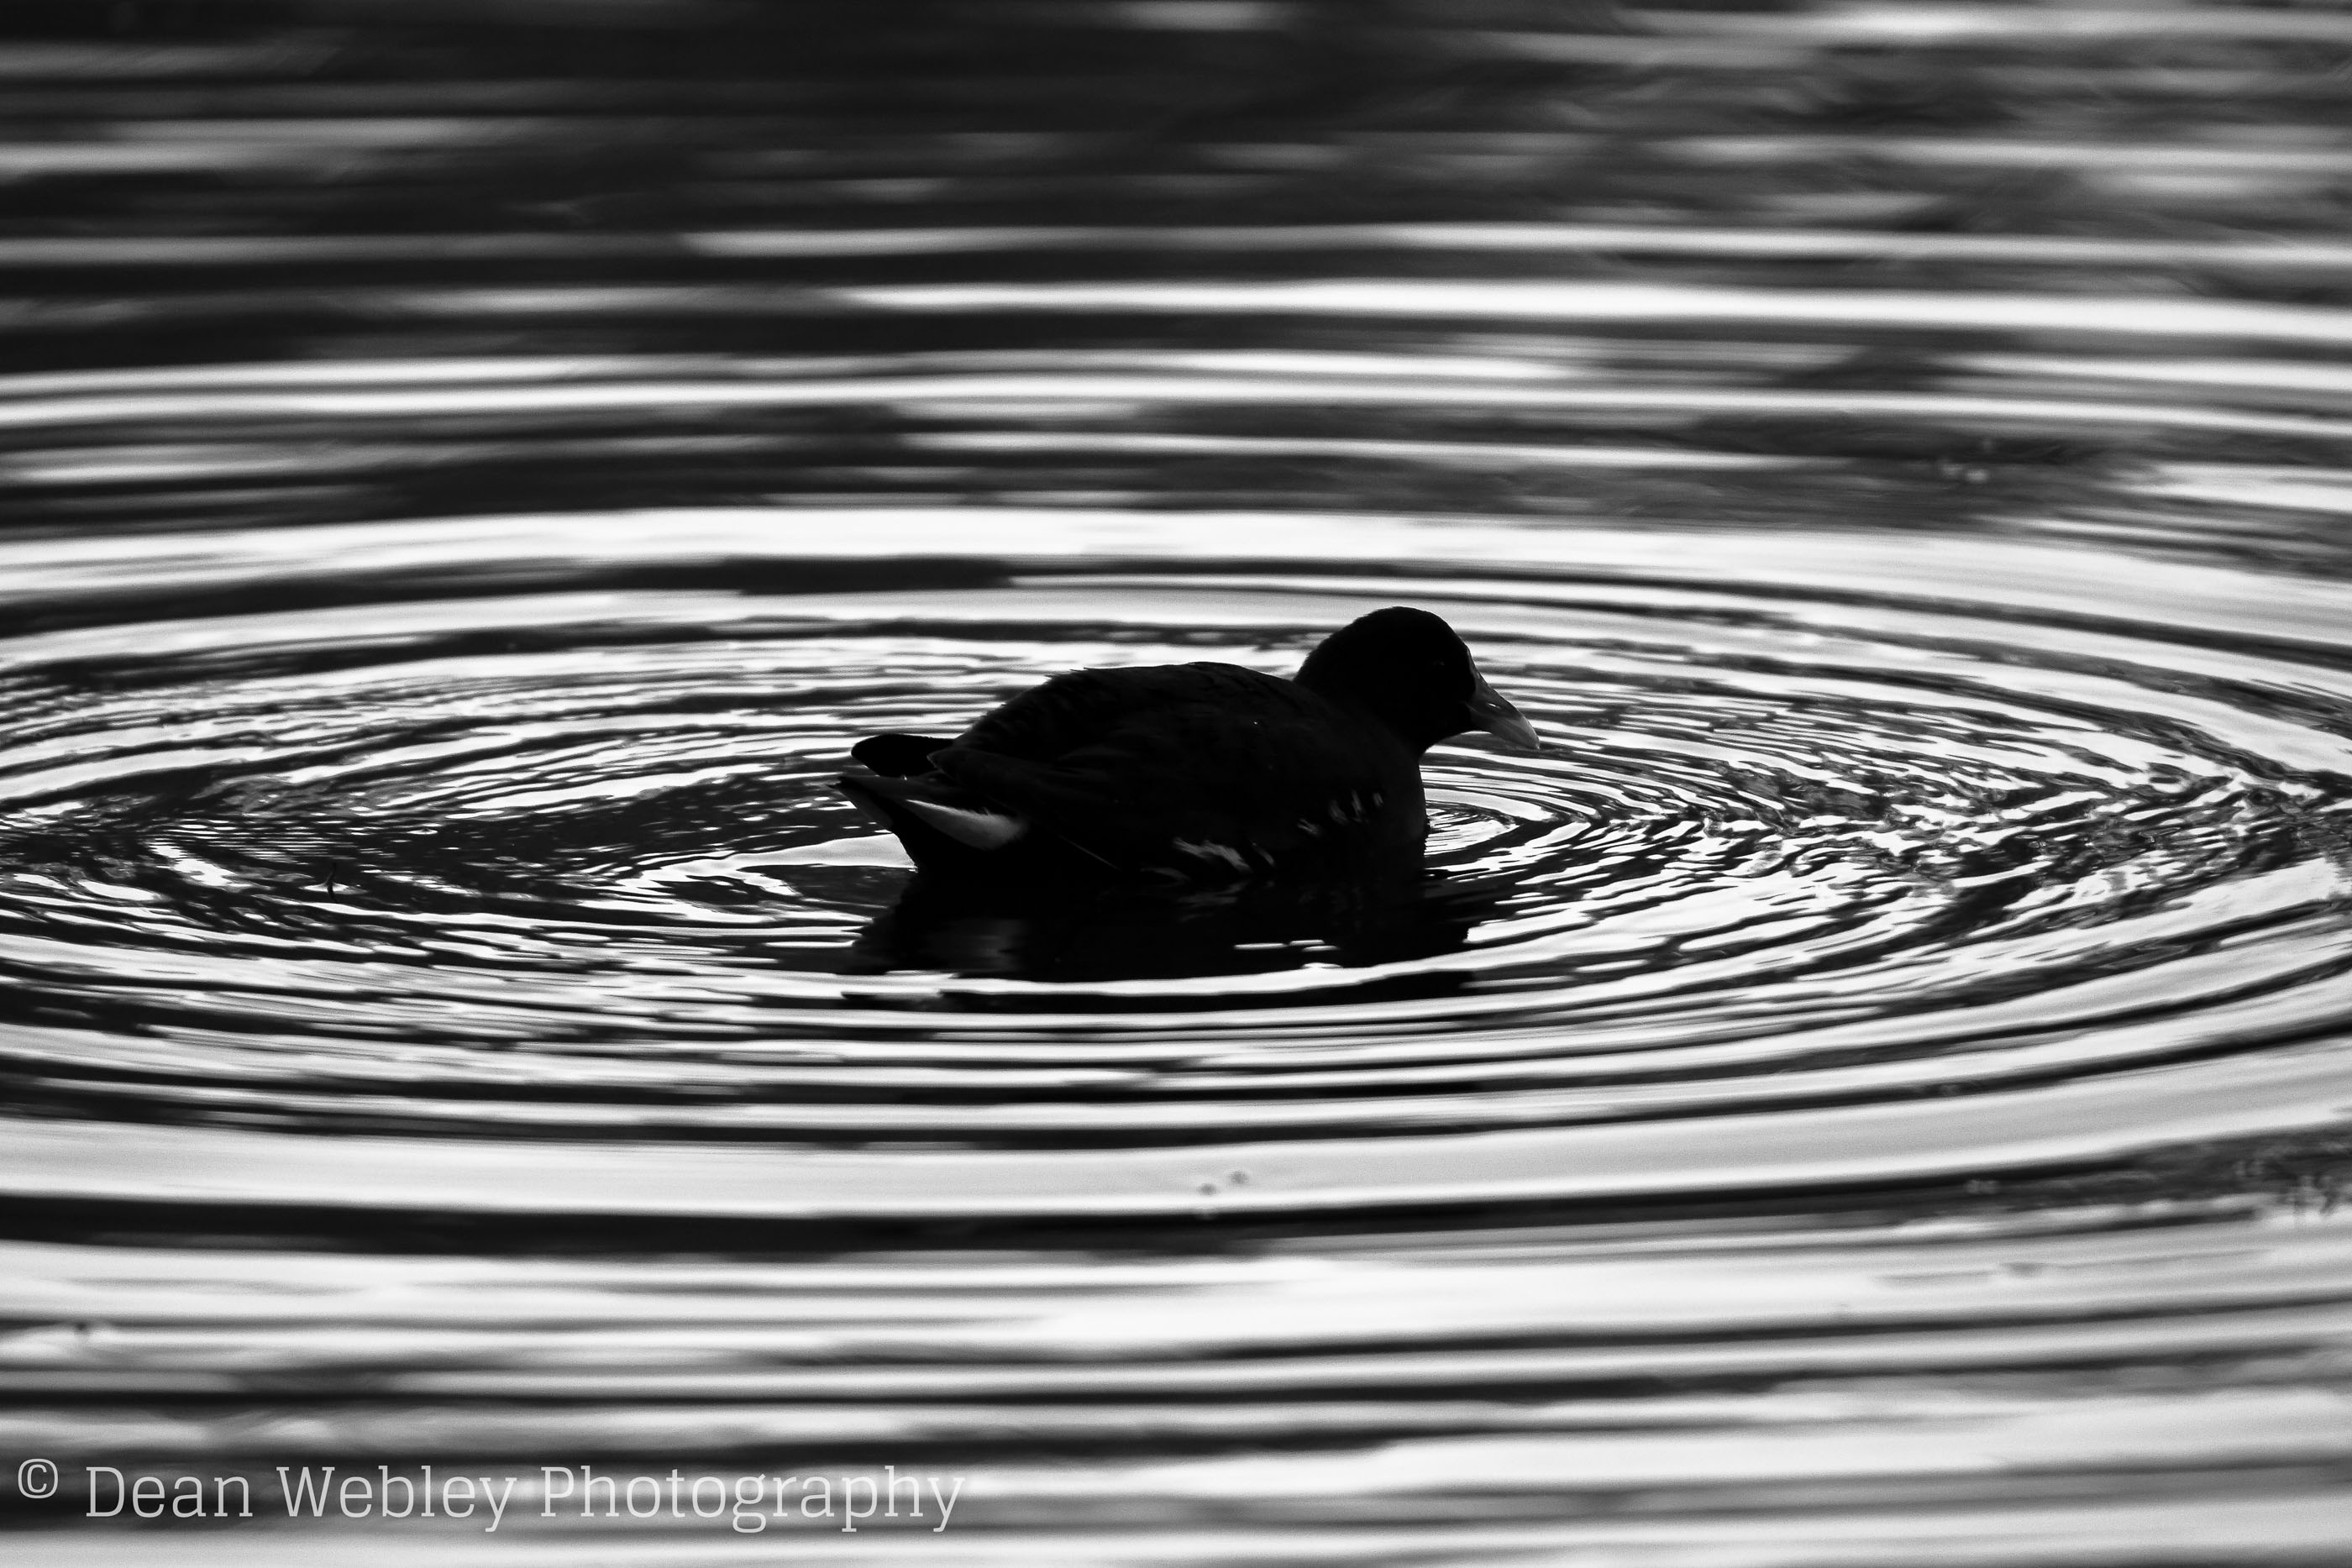 Black and White Mallard Duck Surrounded By Ripples, Taken at Cannop Ponds in the Forest of Dean